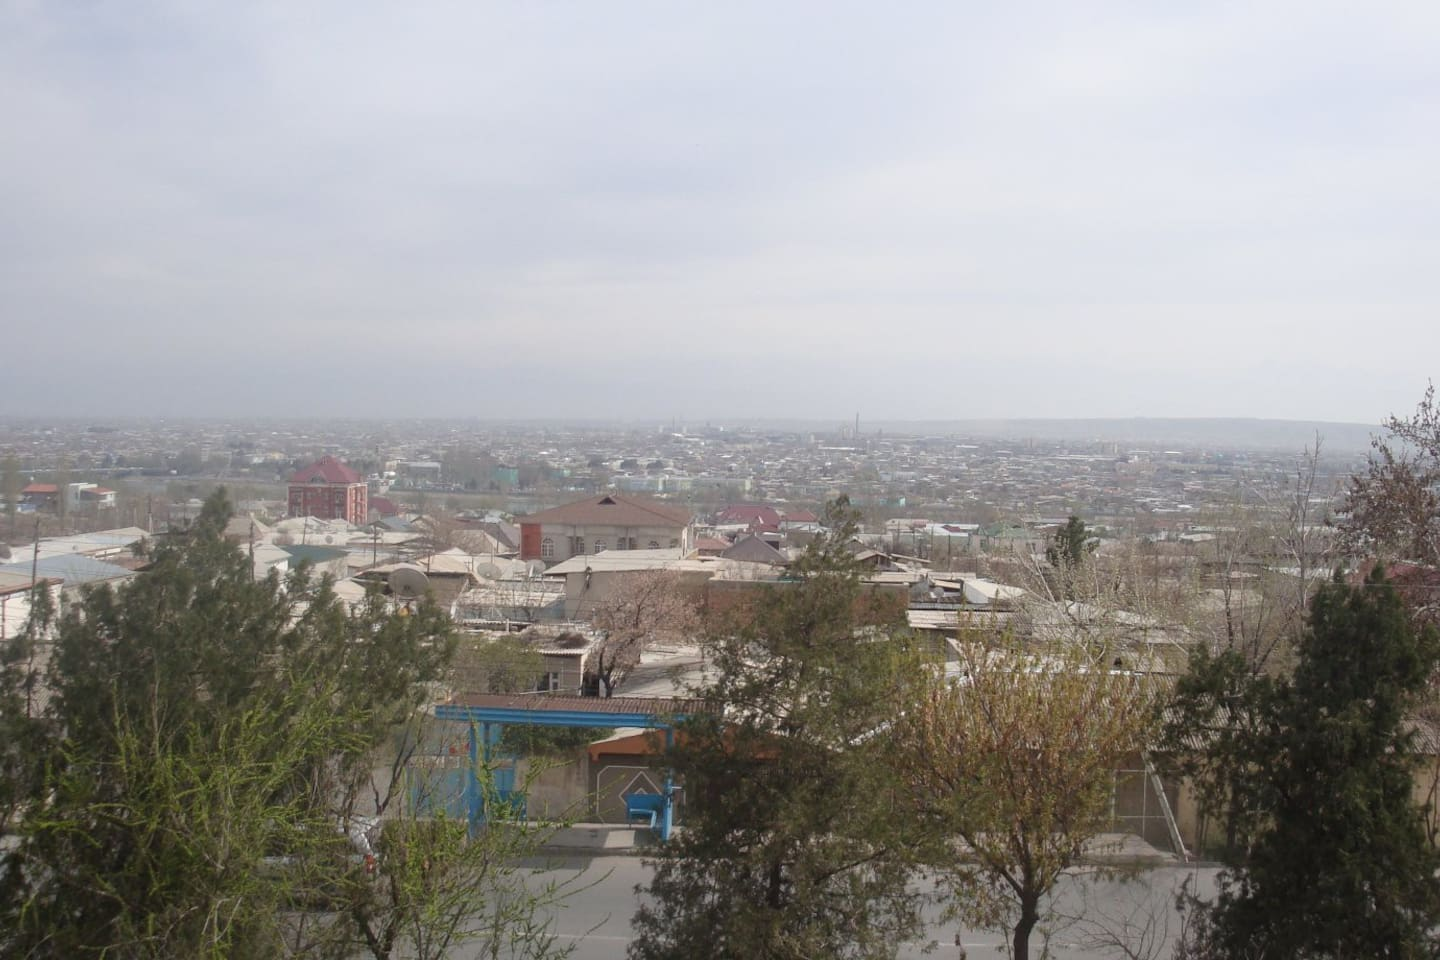 amazing view of Khujand, especially during early hours